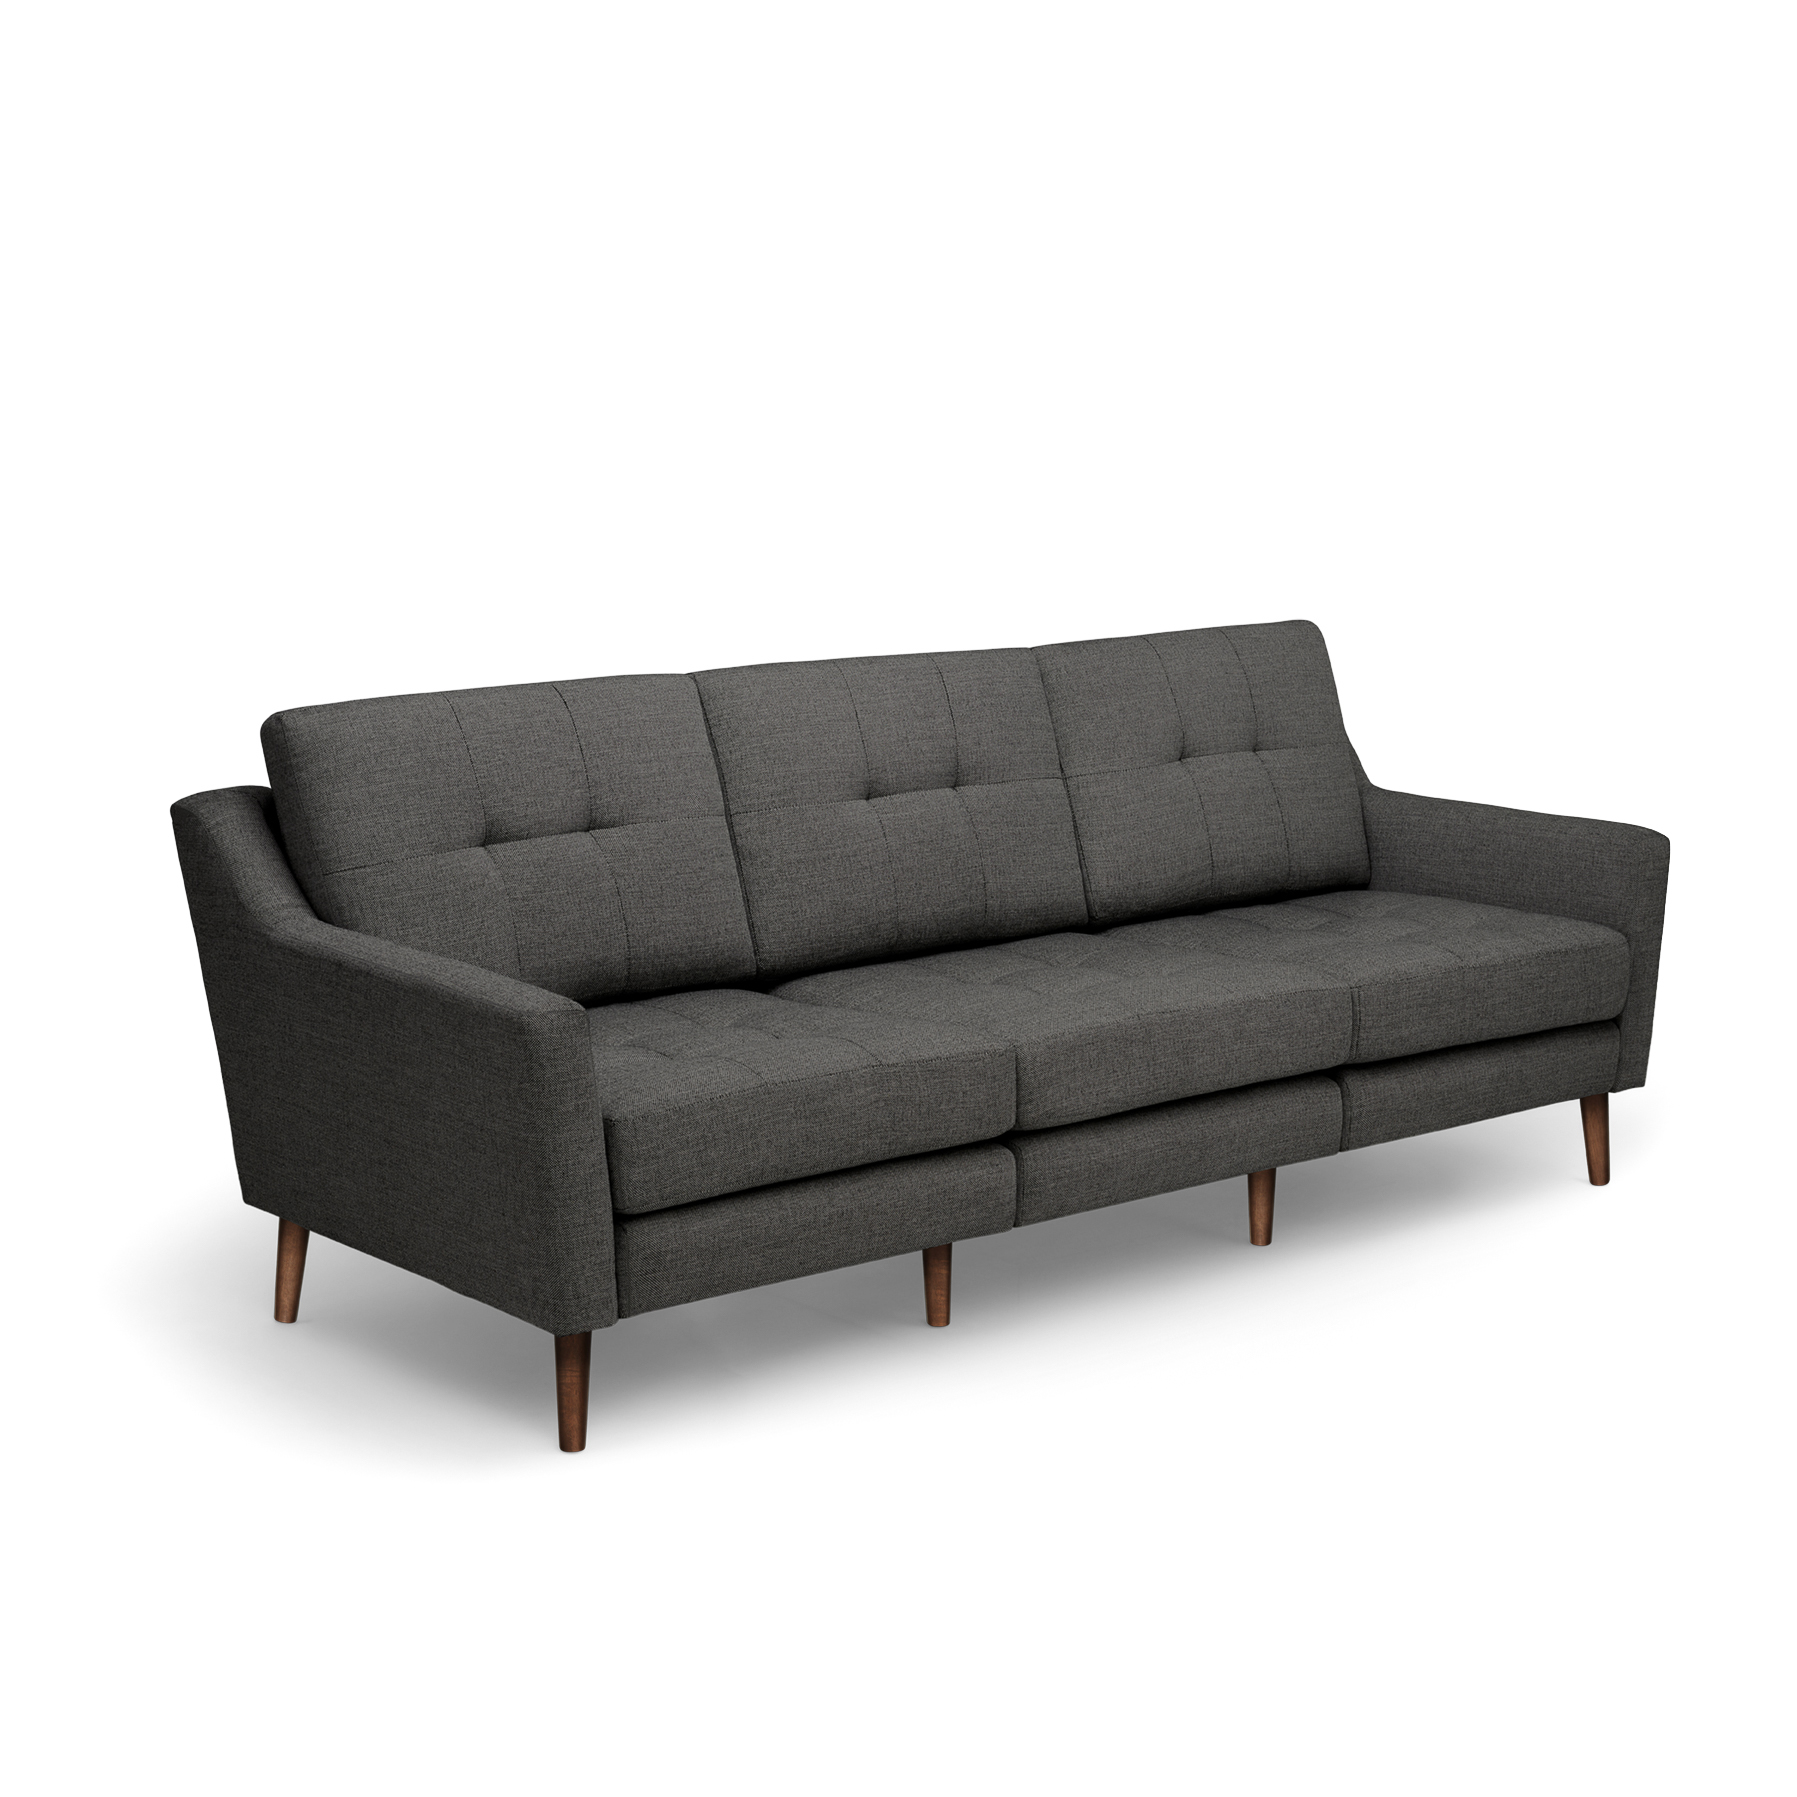 Burrow 3-Seater Sofa | Huckberry